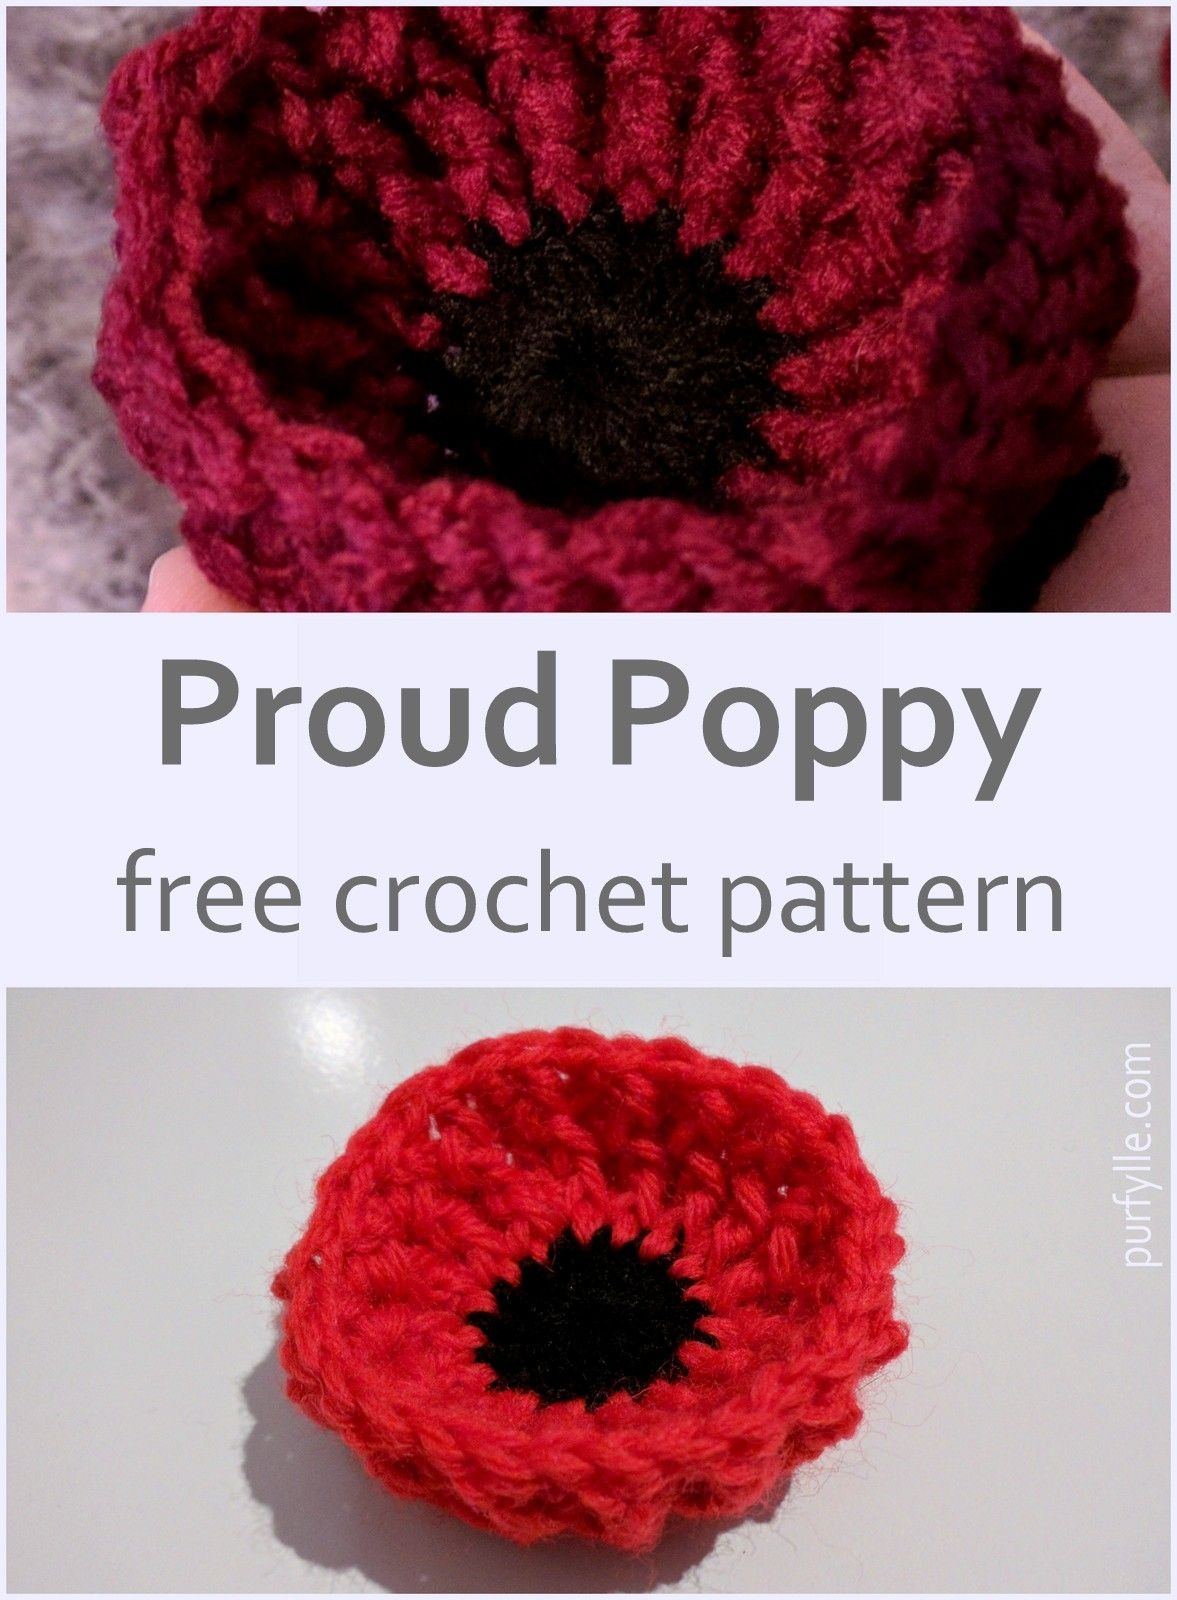 This poppy will sit up nice and proud and hold its shape even if free crochet this poppy will sit up nice and proud and hold its shape even if left out bankloansurffo Image collections